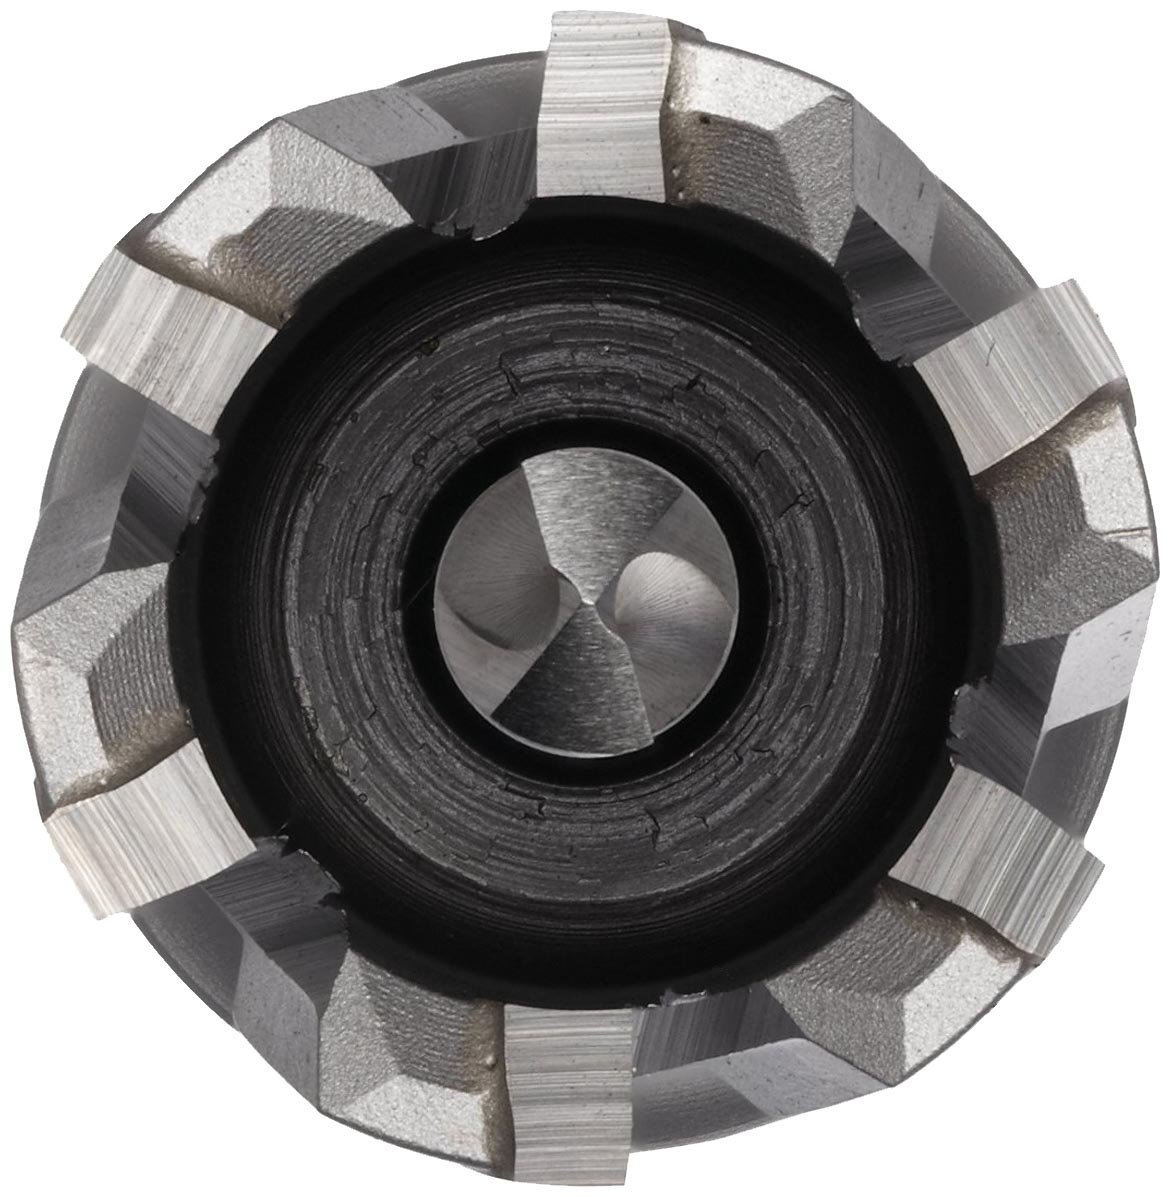 Bright Uncoated Jancy Slugger Carbide-Tipped Annular Cutter 1-1//8  Diameter 1 Depth 1//2 Shank with Flats Finish